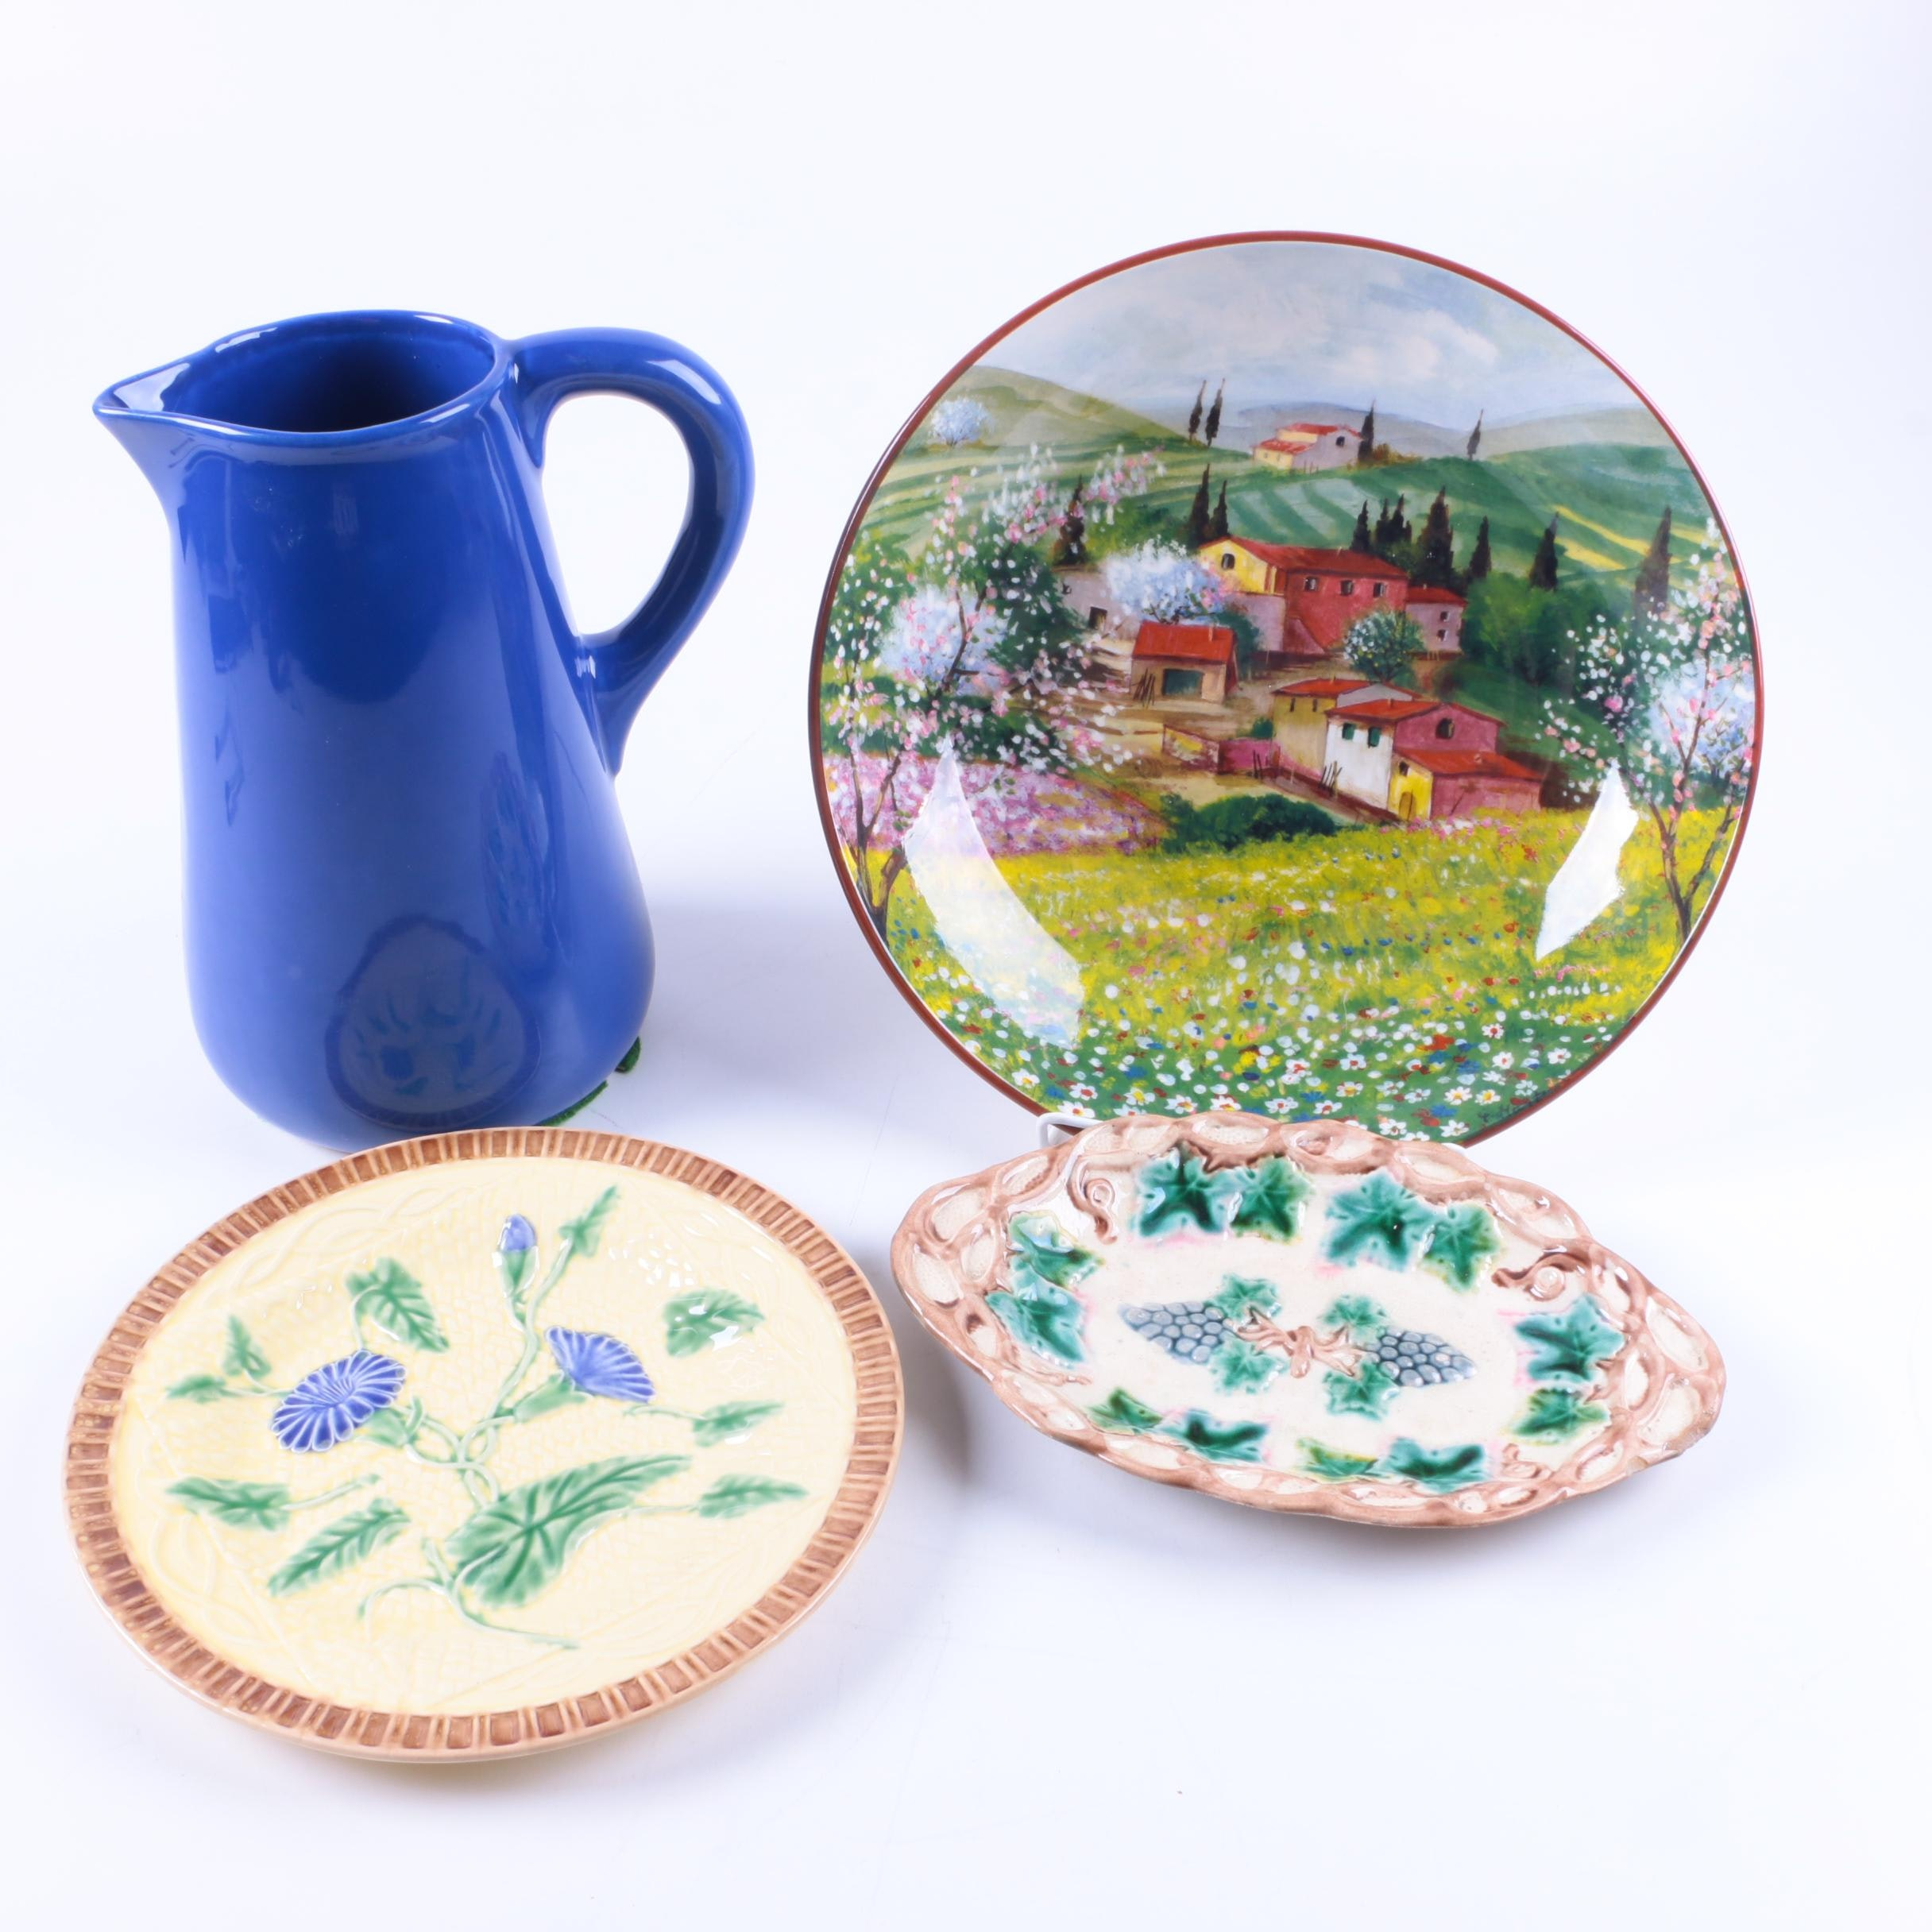 1892 Etruscan Majolica with Portuguese Tableware ...  sc 1 st  EBTH.com & 1892 Etruscan Majolica with Portuguese Tableware : EBTH